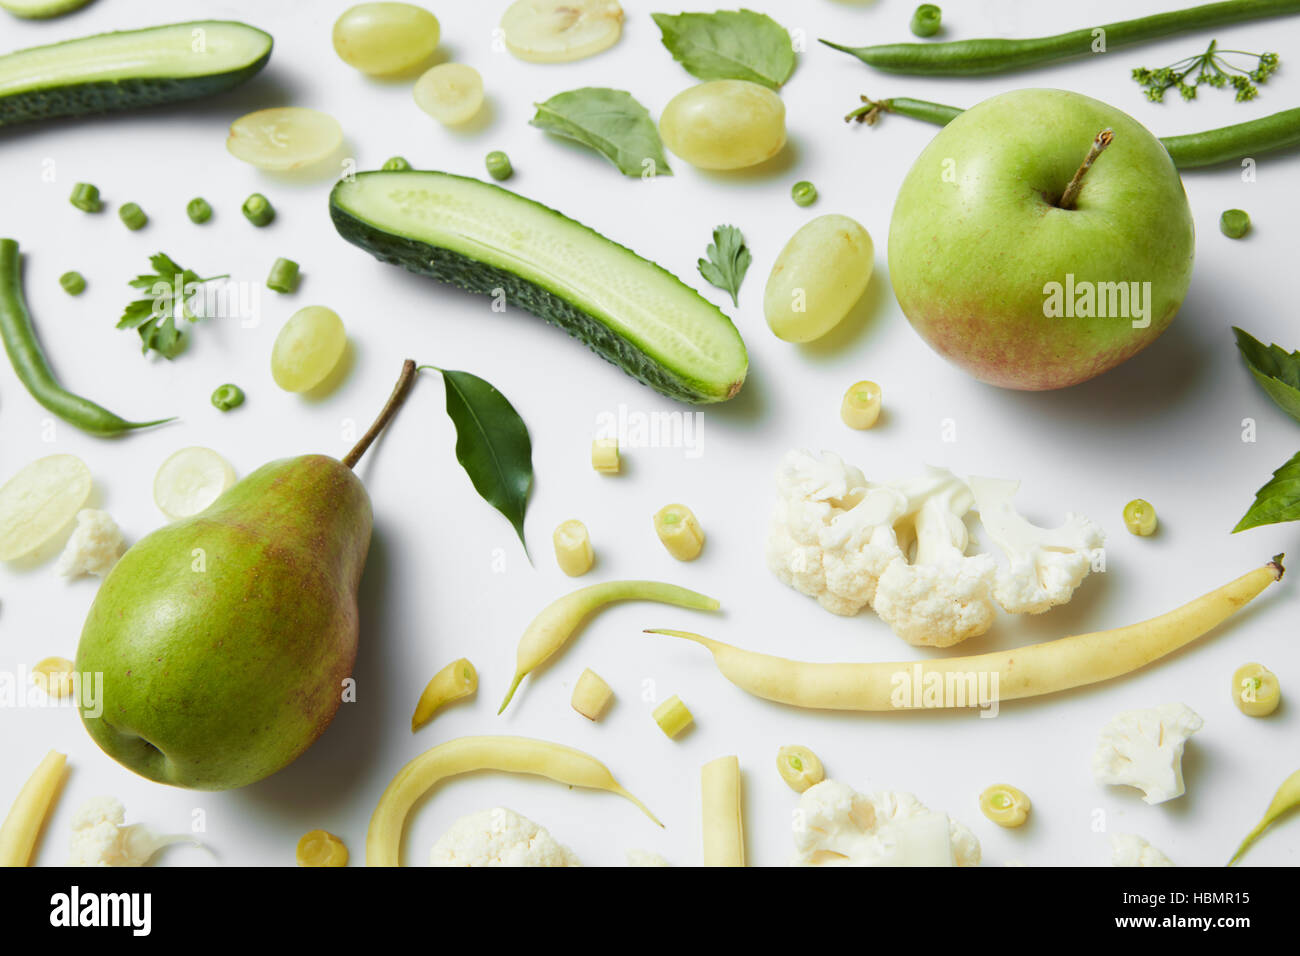 fresh green vegetables and fruits - Stock Image